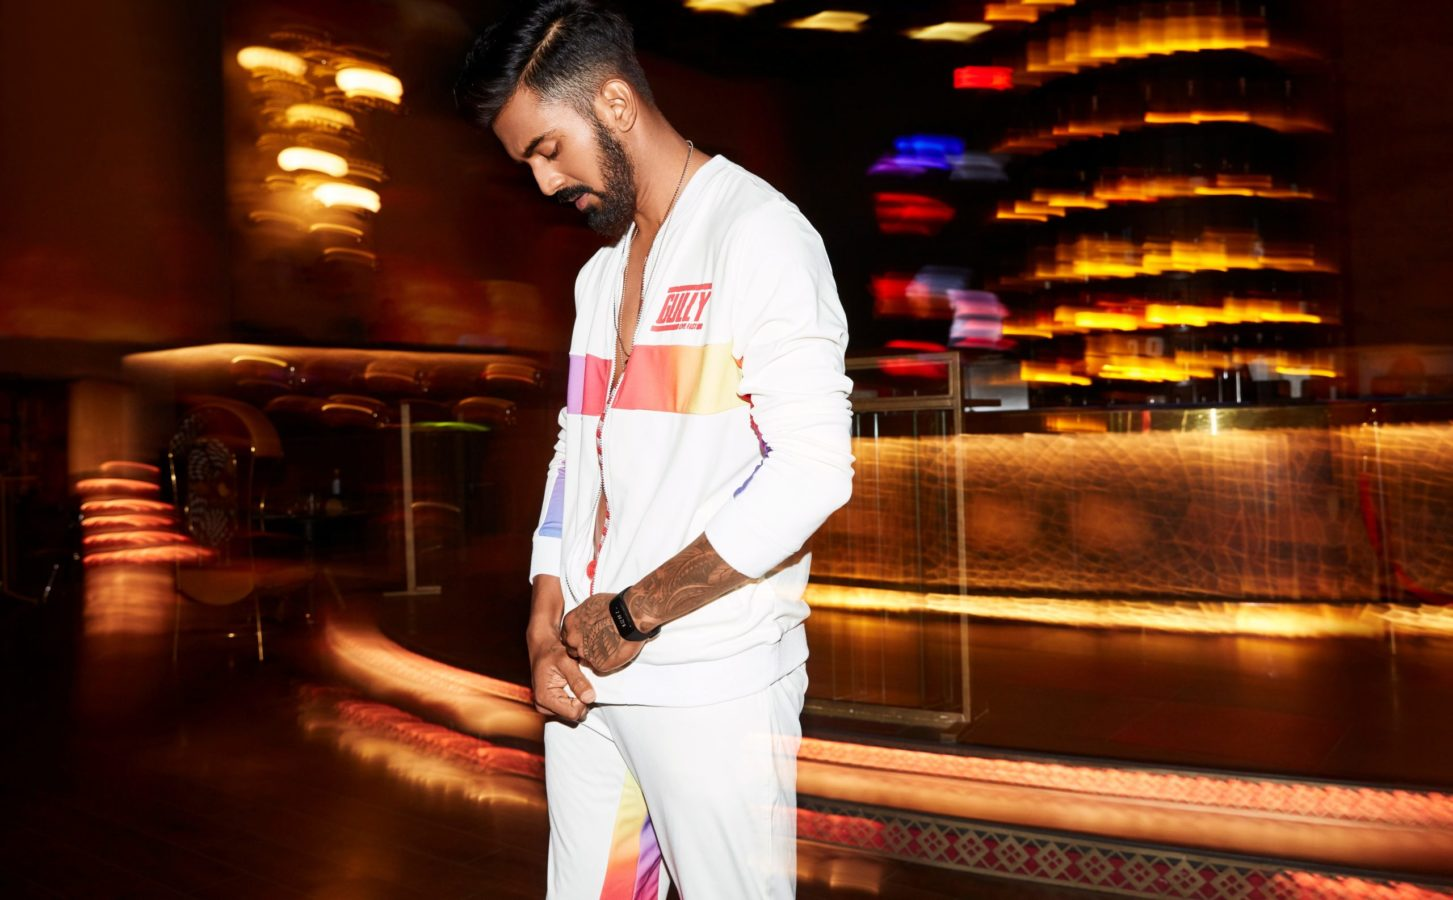 Exclusive: KL Rahul on his new and exciting cult street-style label 'Gully'